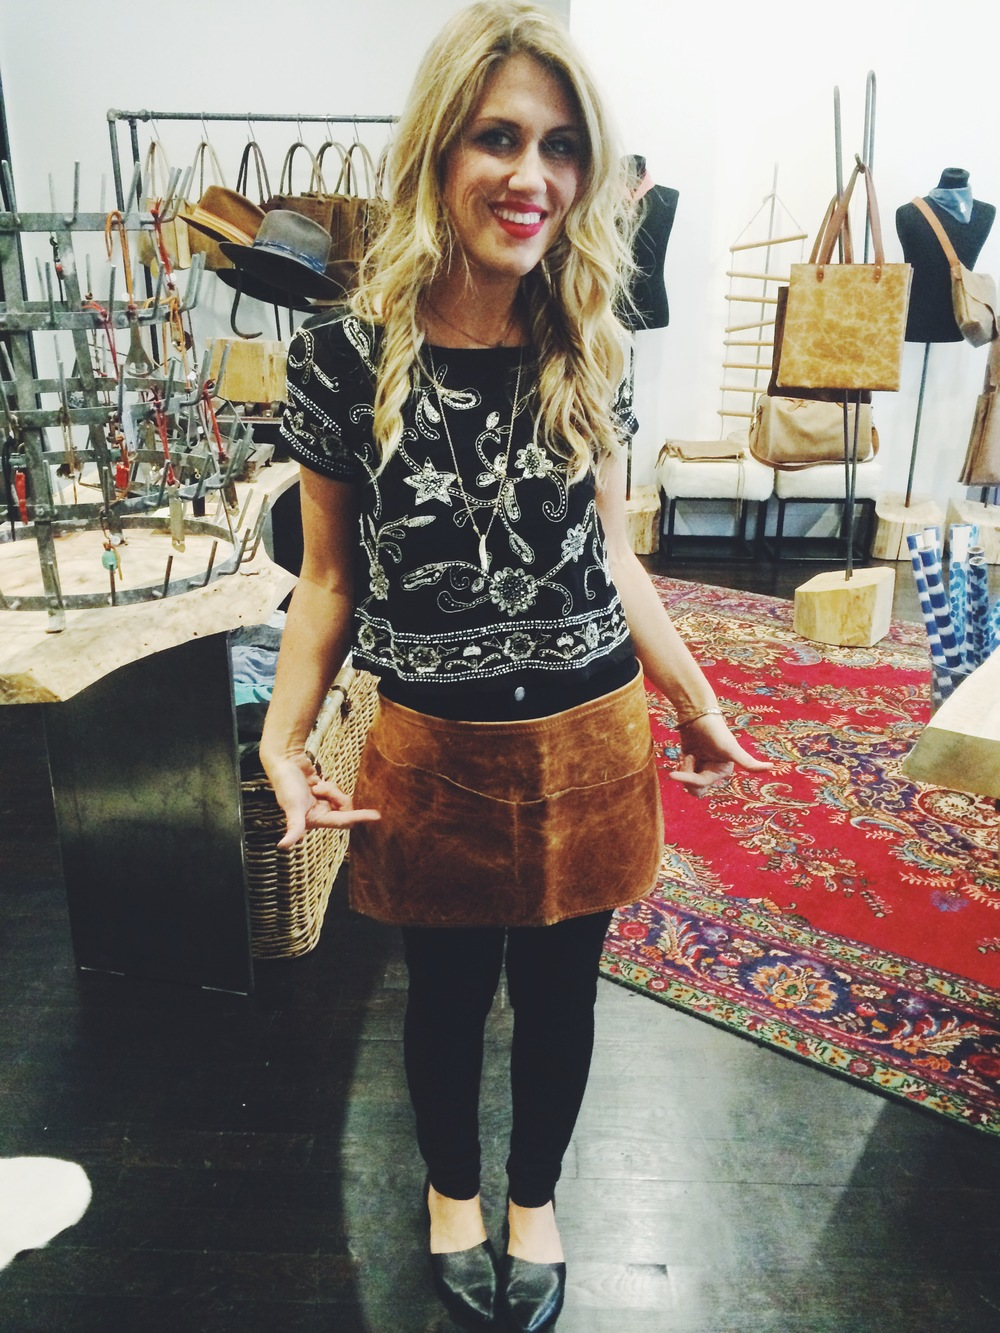 Cheryl from Stash Co let me sport this rad apron on the Local Gifts Great Day segment. I'm obsessed!